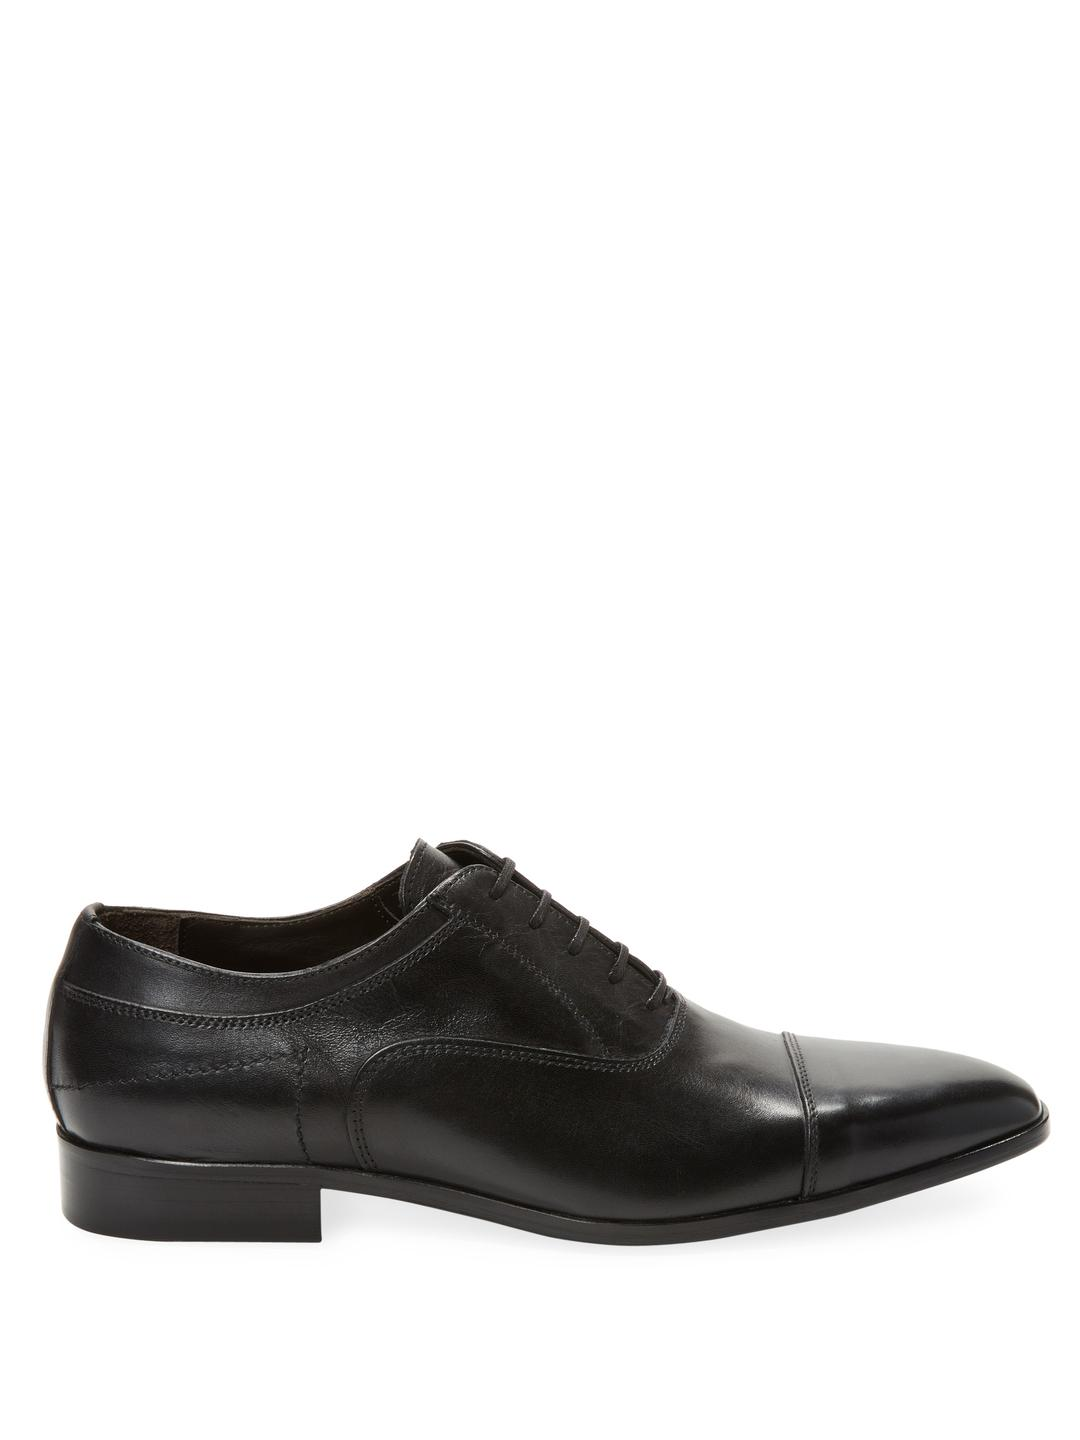 Wall + Water Leather Captoe Oxford in Black for Men